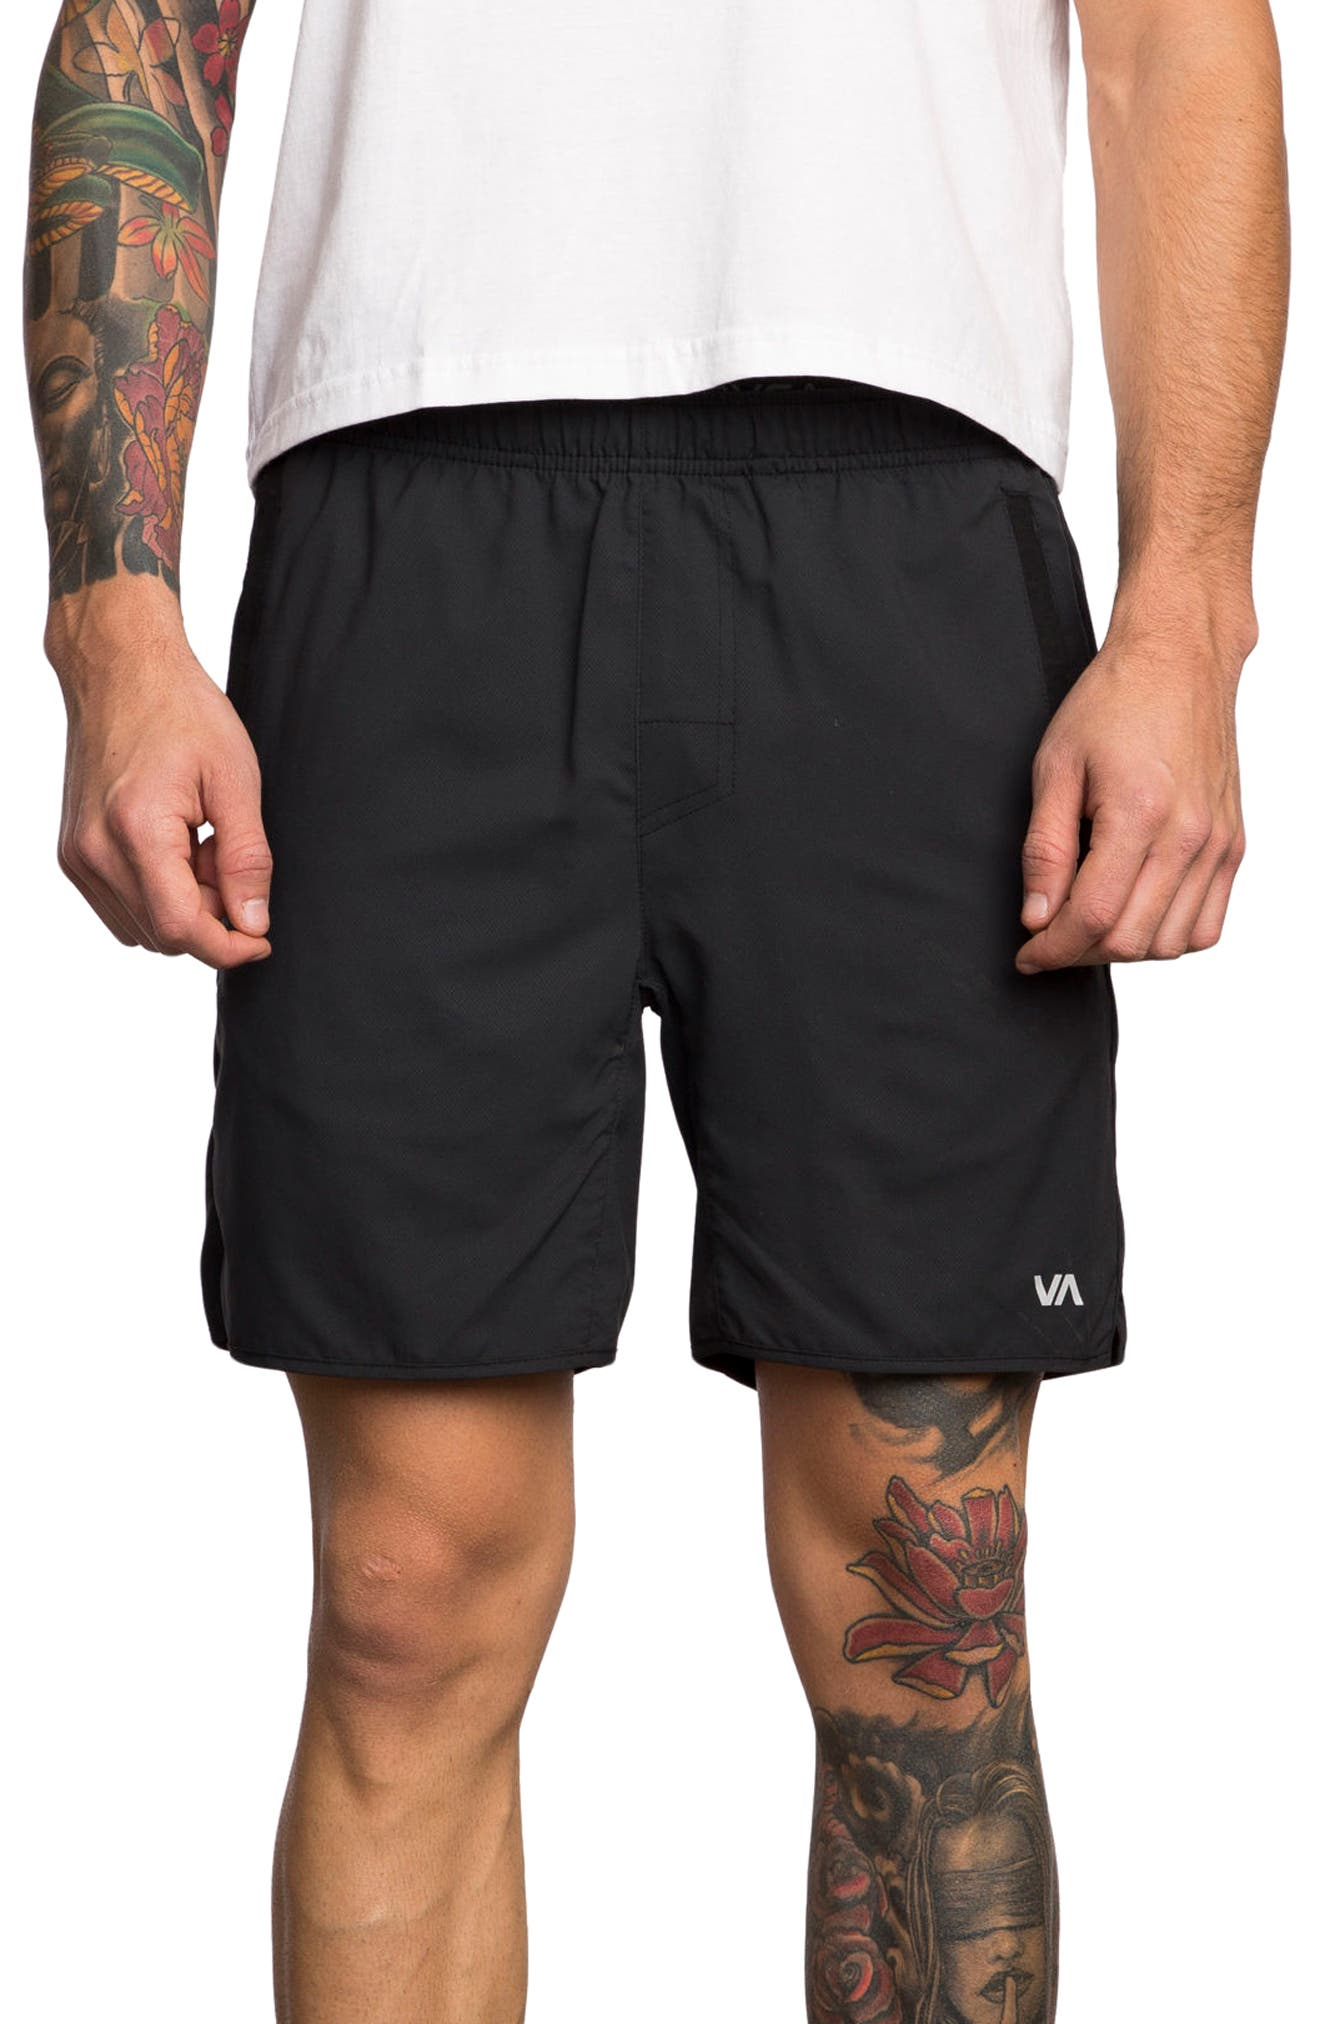 Yogger III Athletic Shorts,                         Main,                         color, Black